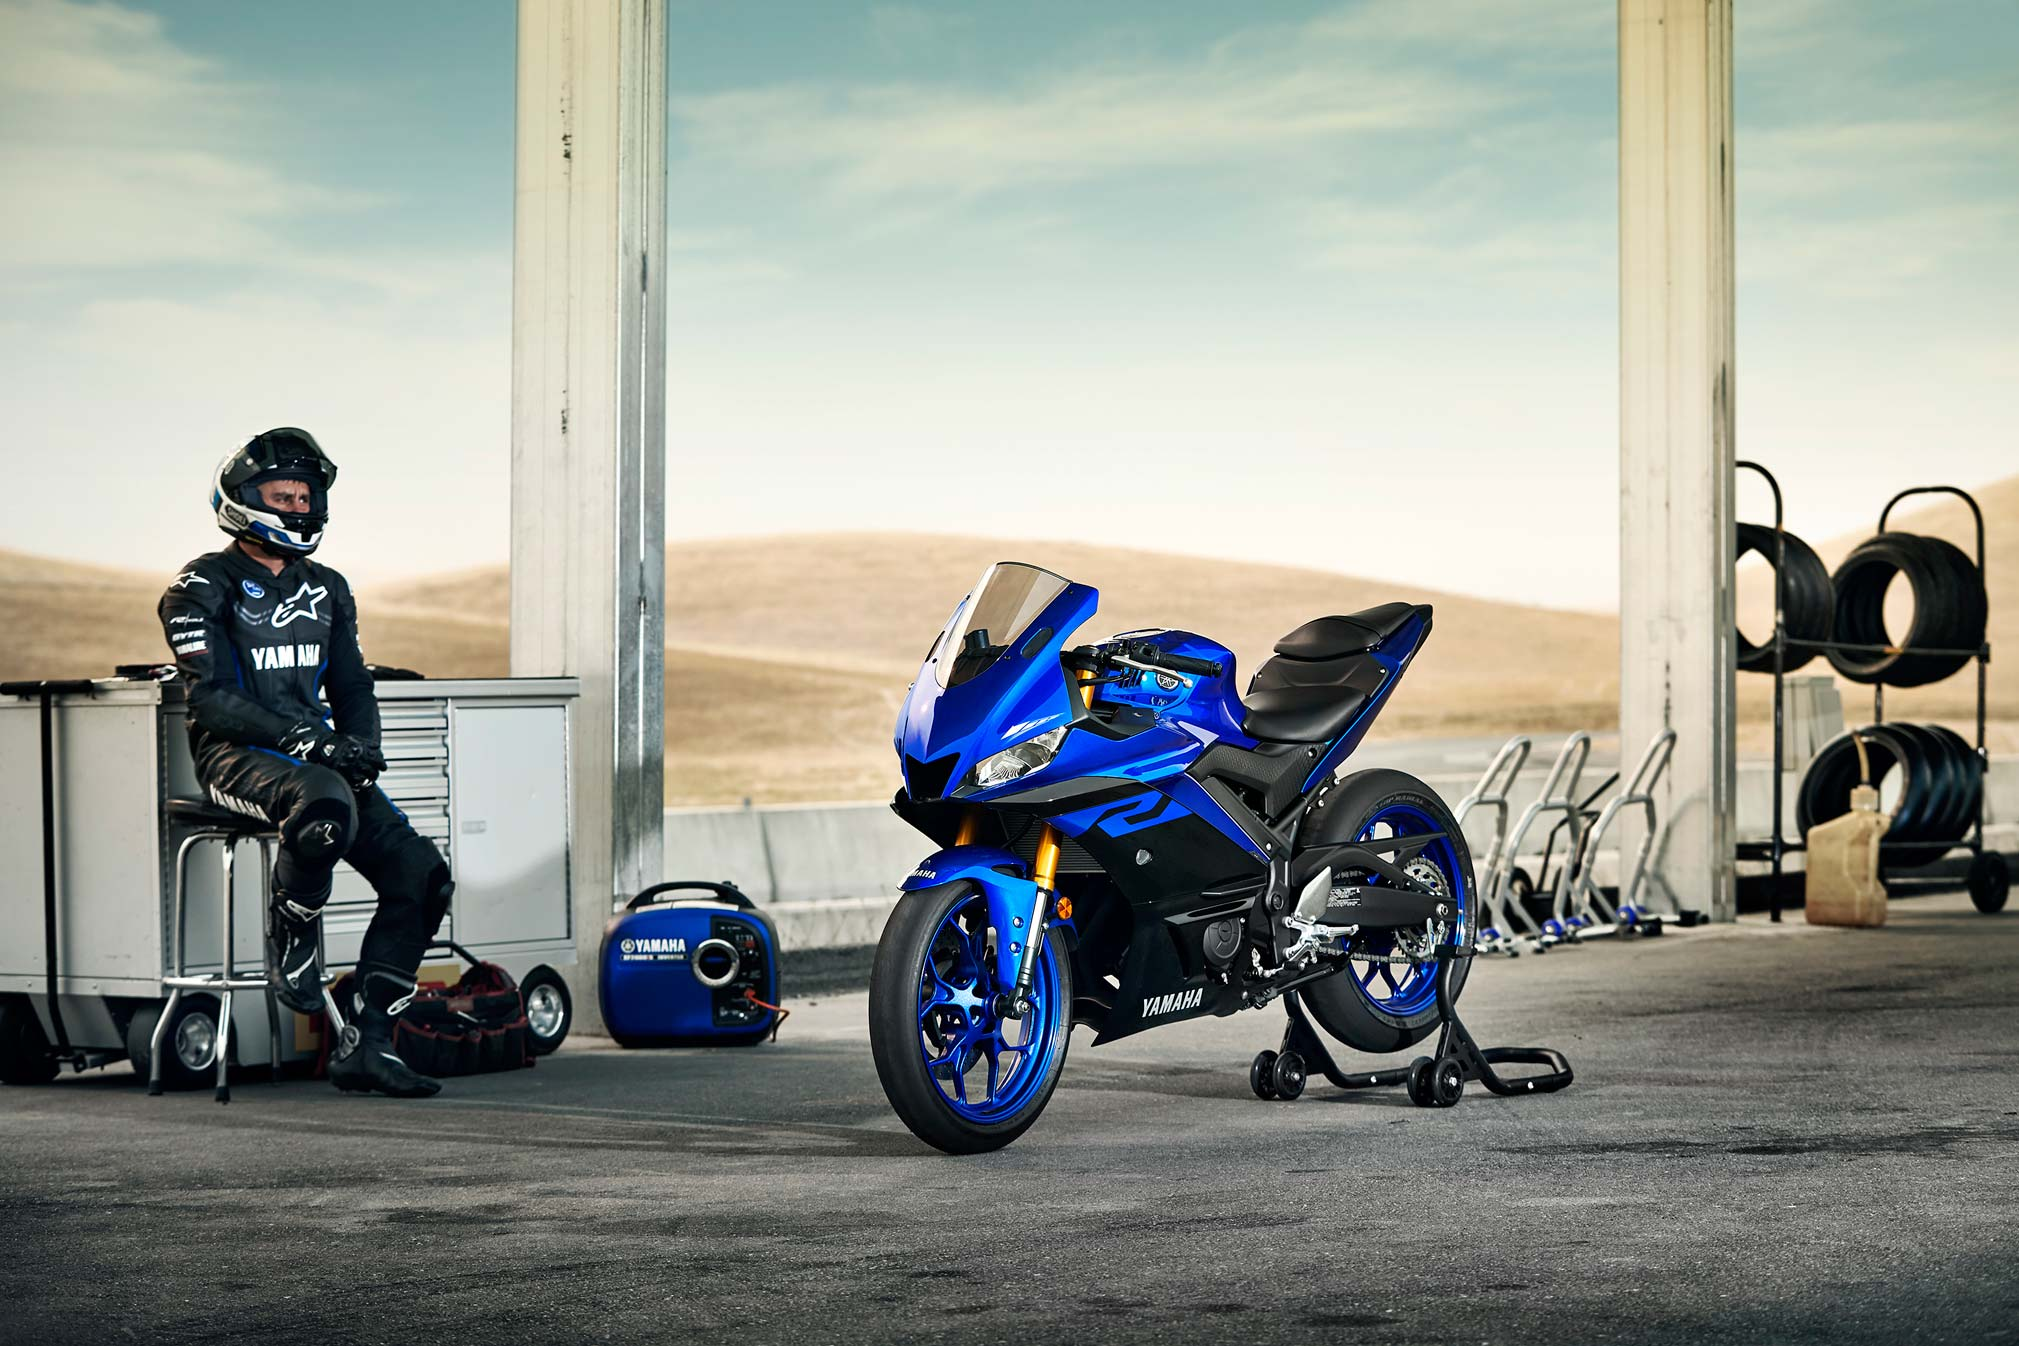 2019 yamaha yzf-r3 guide • total motorcycle